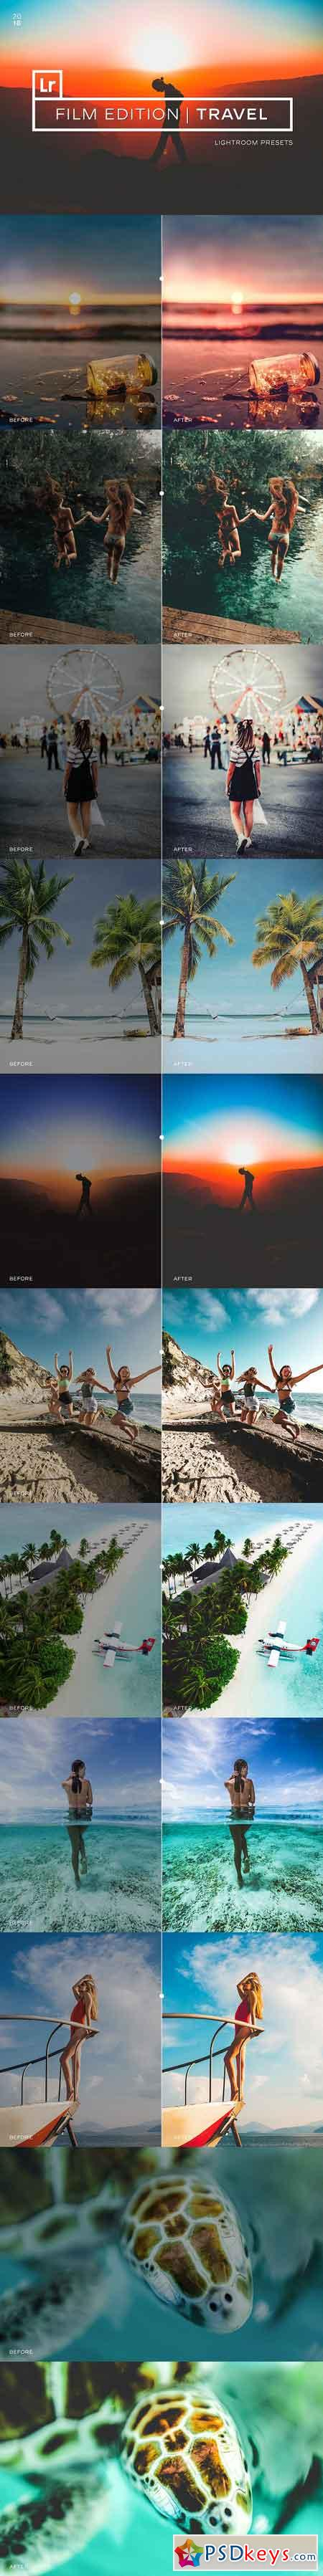 100+ Film Travel Lightroom Presets 2708397